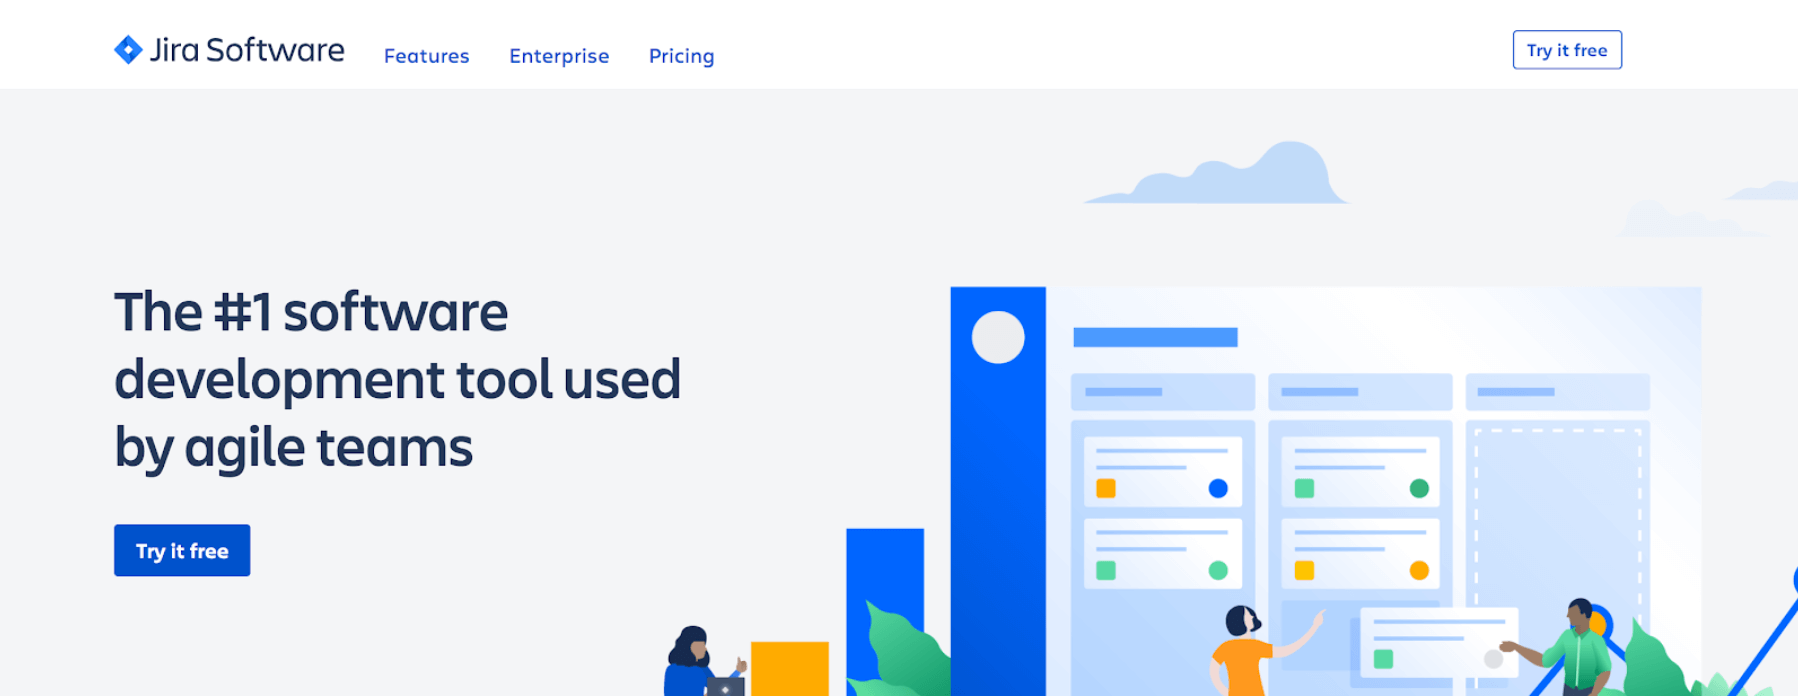 jira software homepage